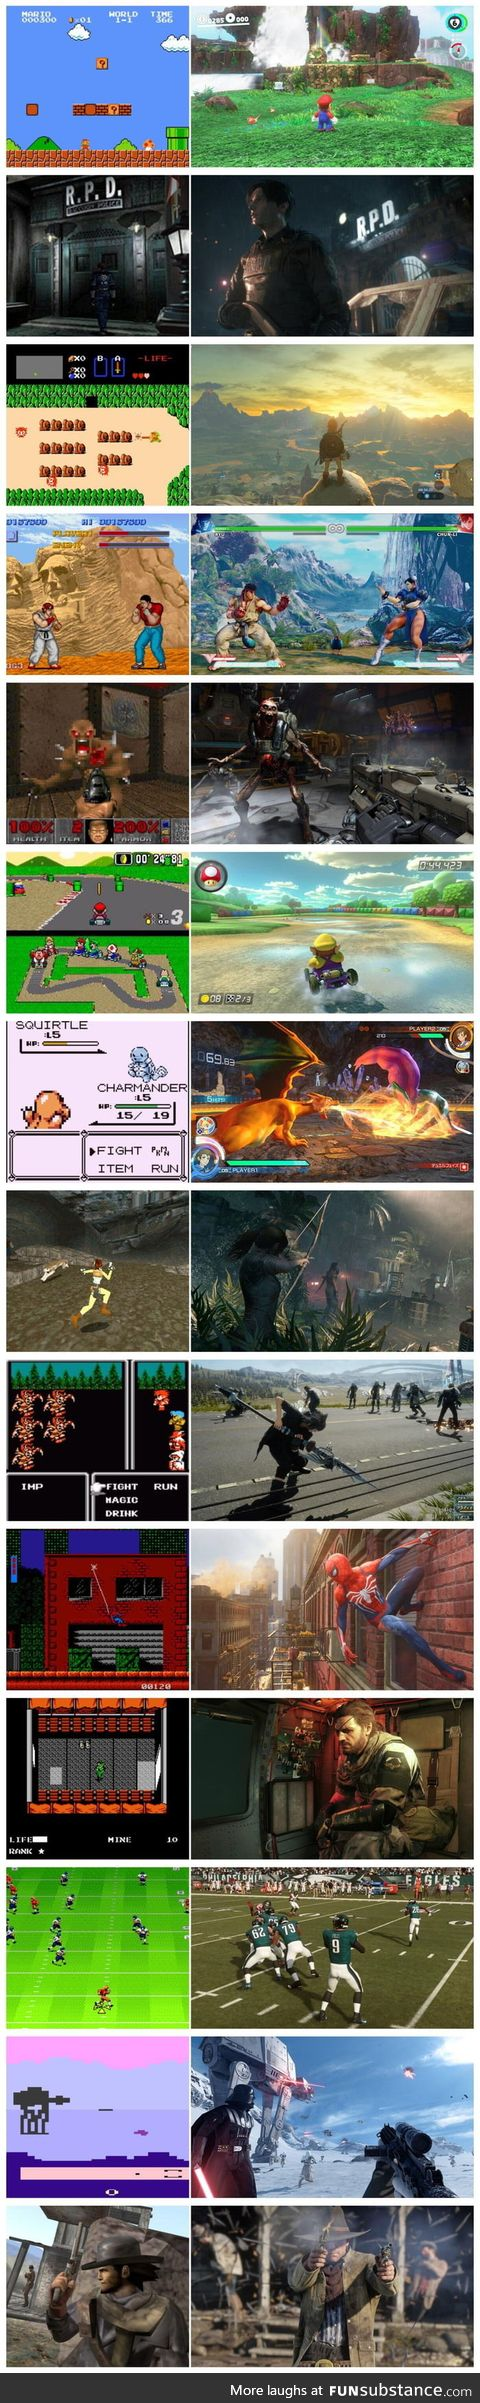 Graphics sure have come a long way